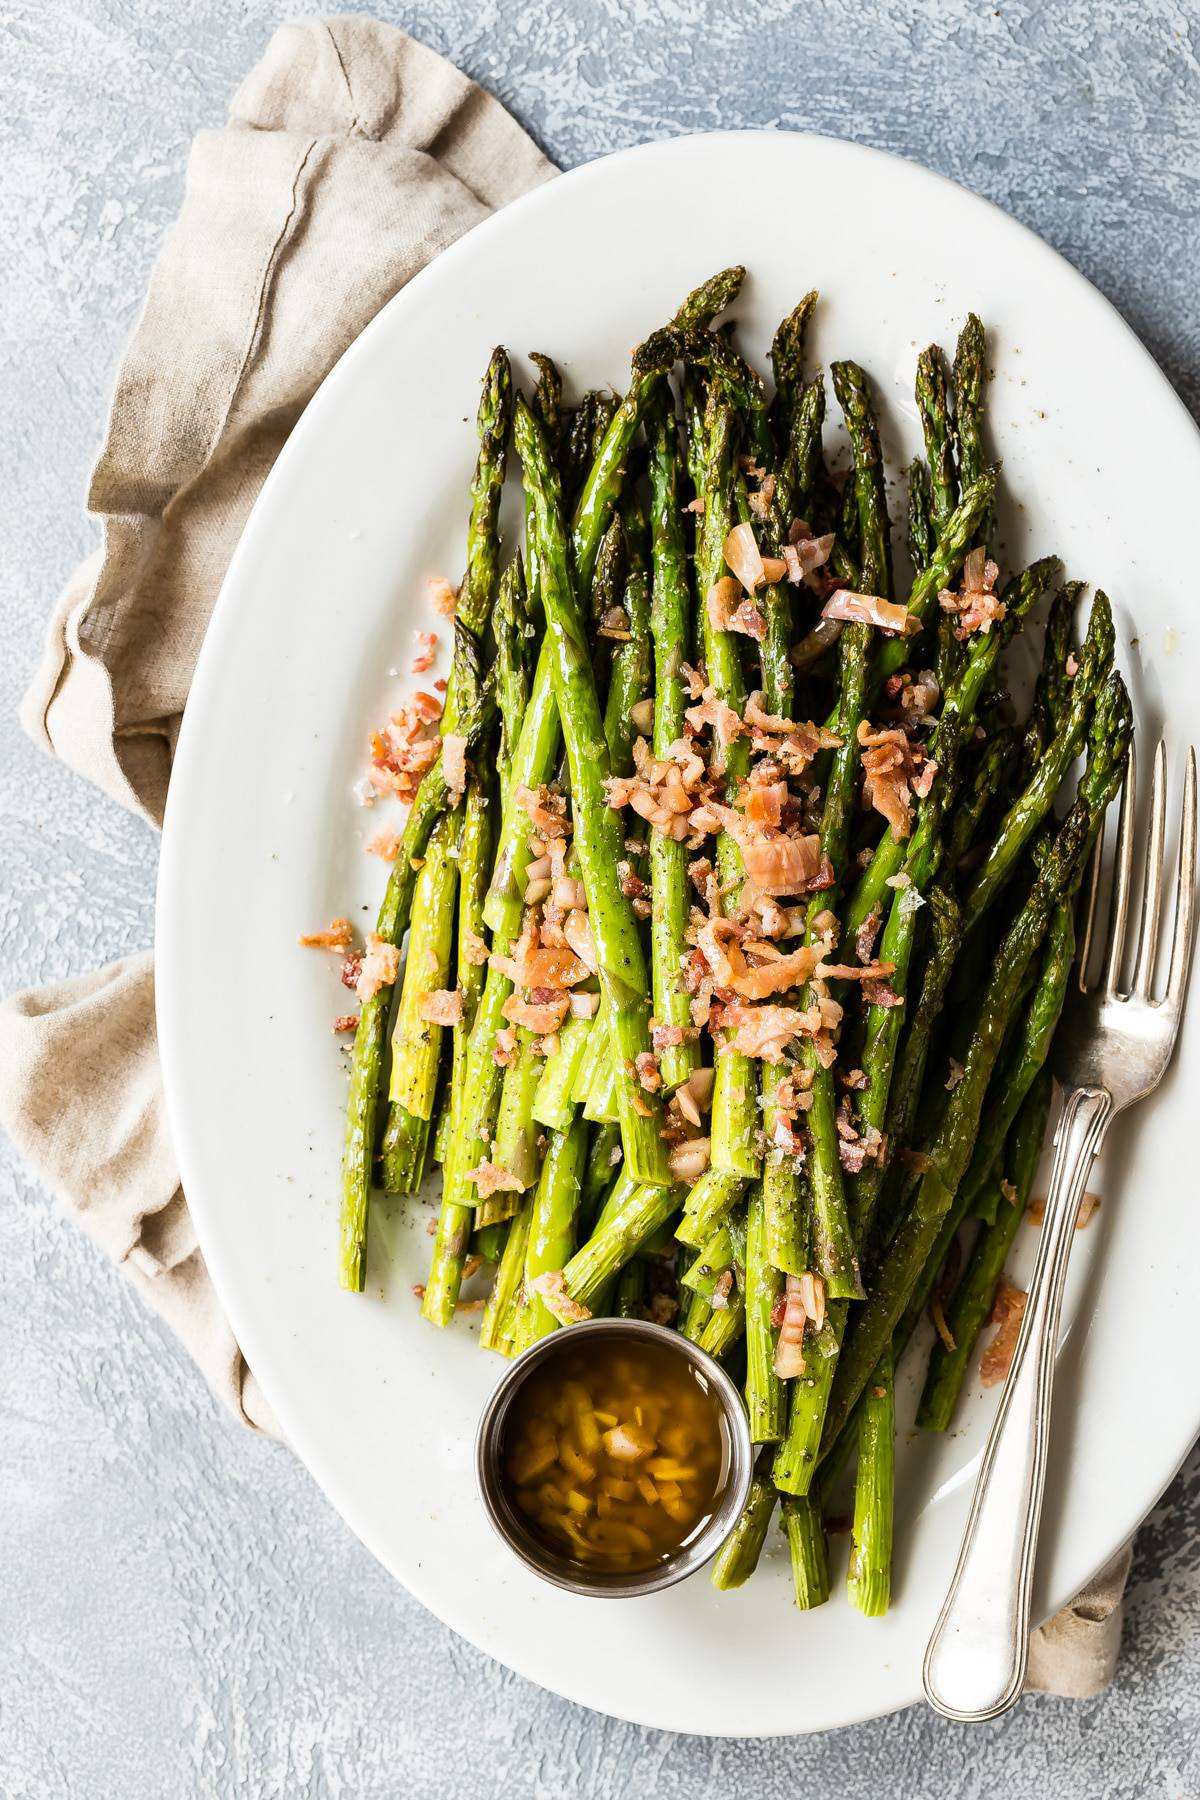 Roasted asparagus with bacon and a shallot and Dijon mustard dressing